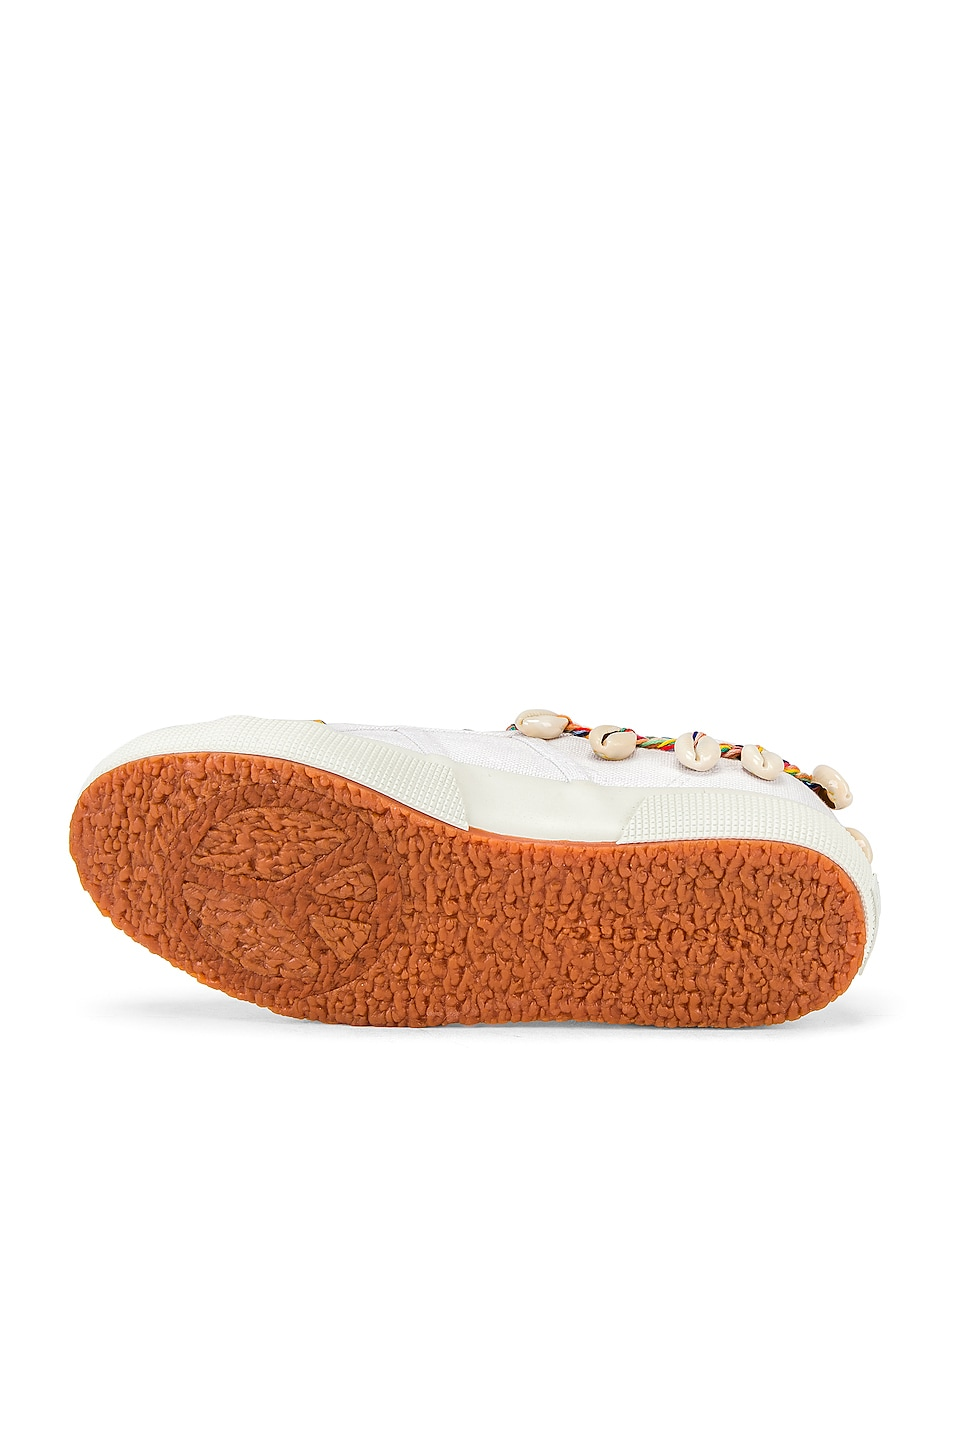 Image 6 of ALANUI x SUPERGA Low Top Cowrie Shells Sneaker in White Multi